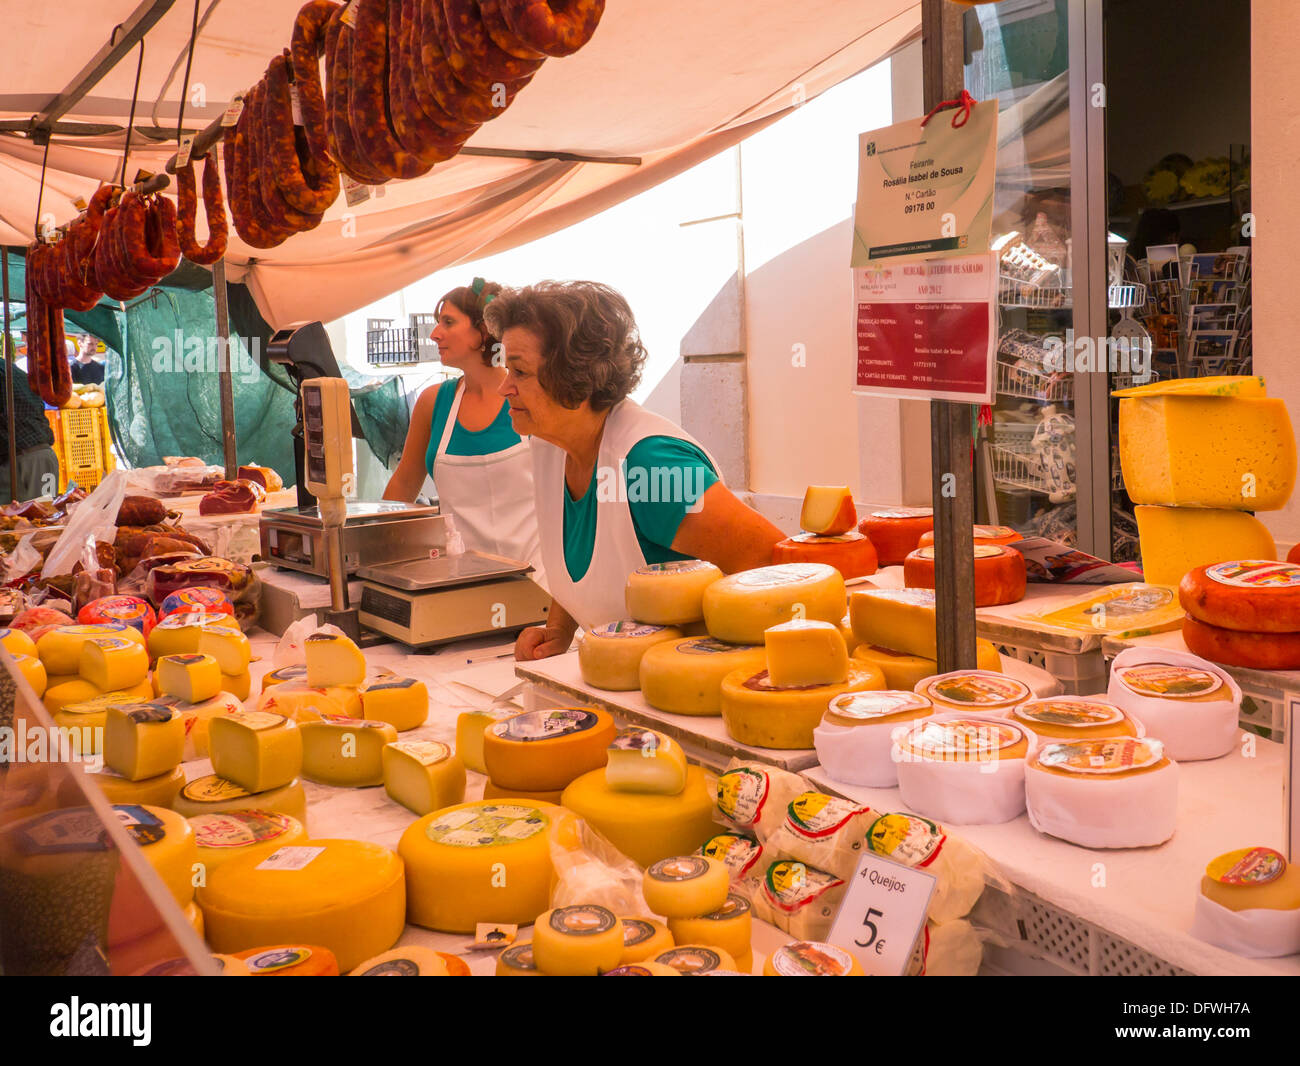 Portugal Algarve Loule market cheese cheeses stall chorizo spicy sausage sausages scale scales 2 ladies women serving scales weighing machine - Stock Image